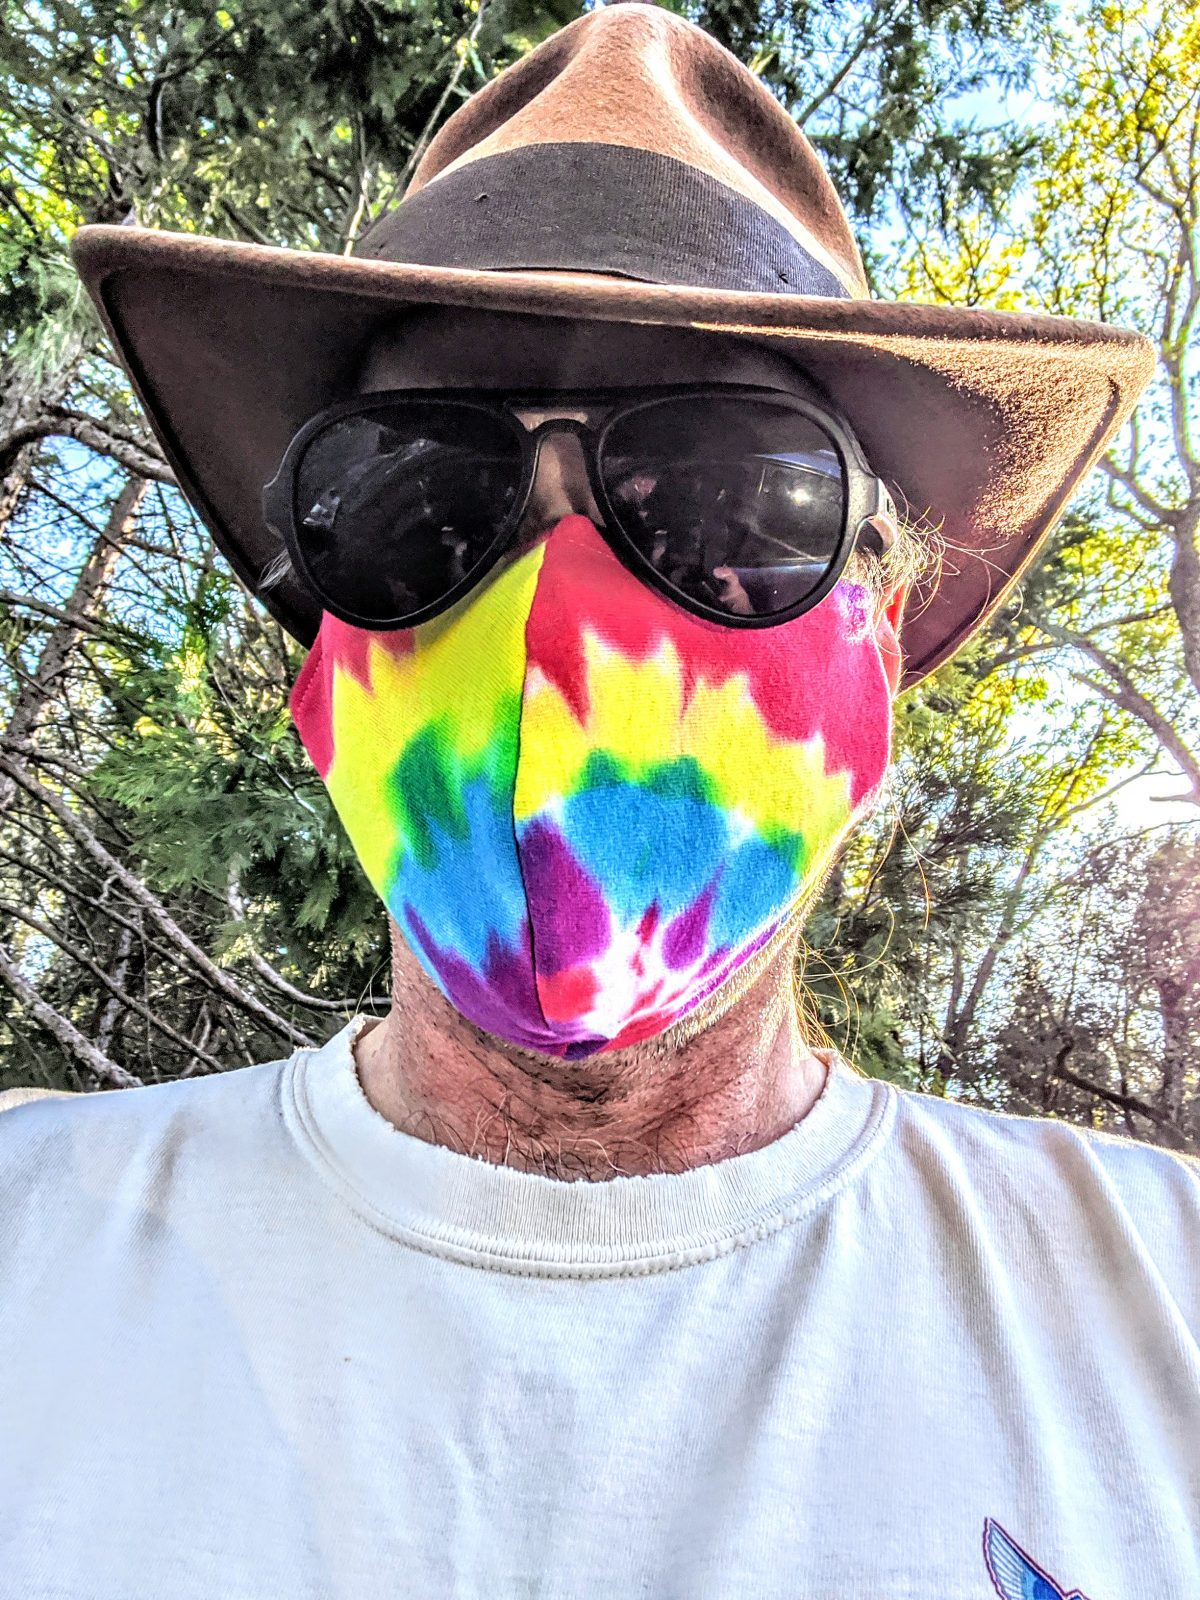 Stamas Bro Aristotle Wearing a Tie Dyed Covid Mask 2020 Image 001